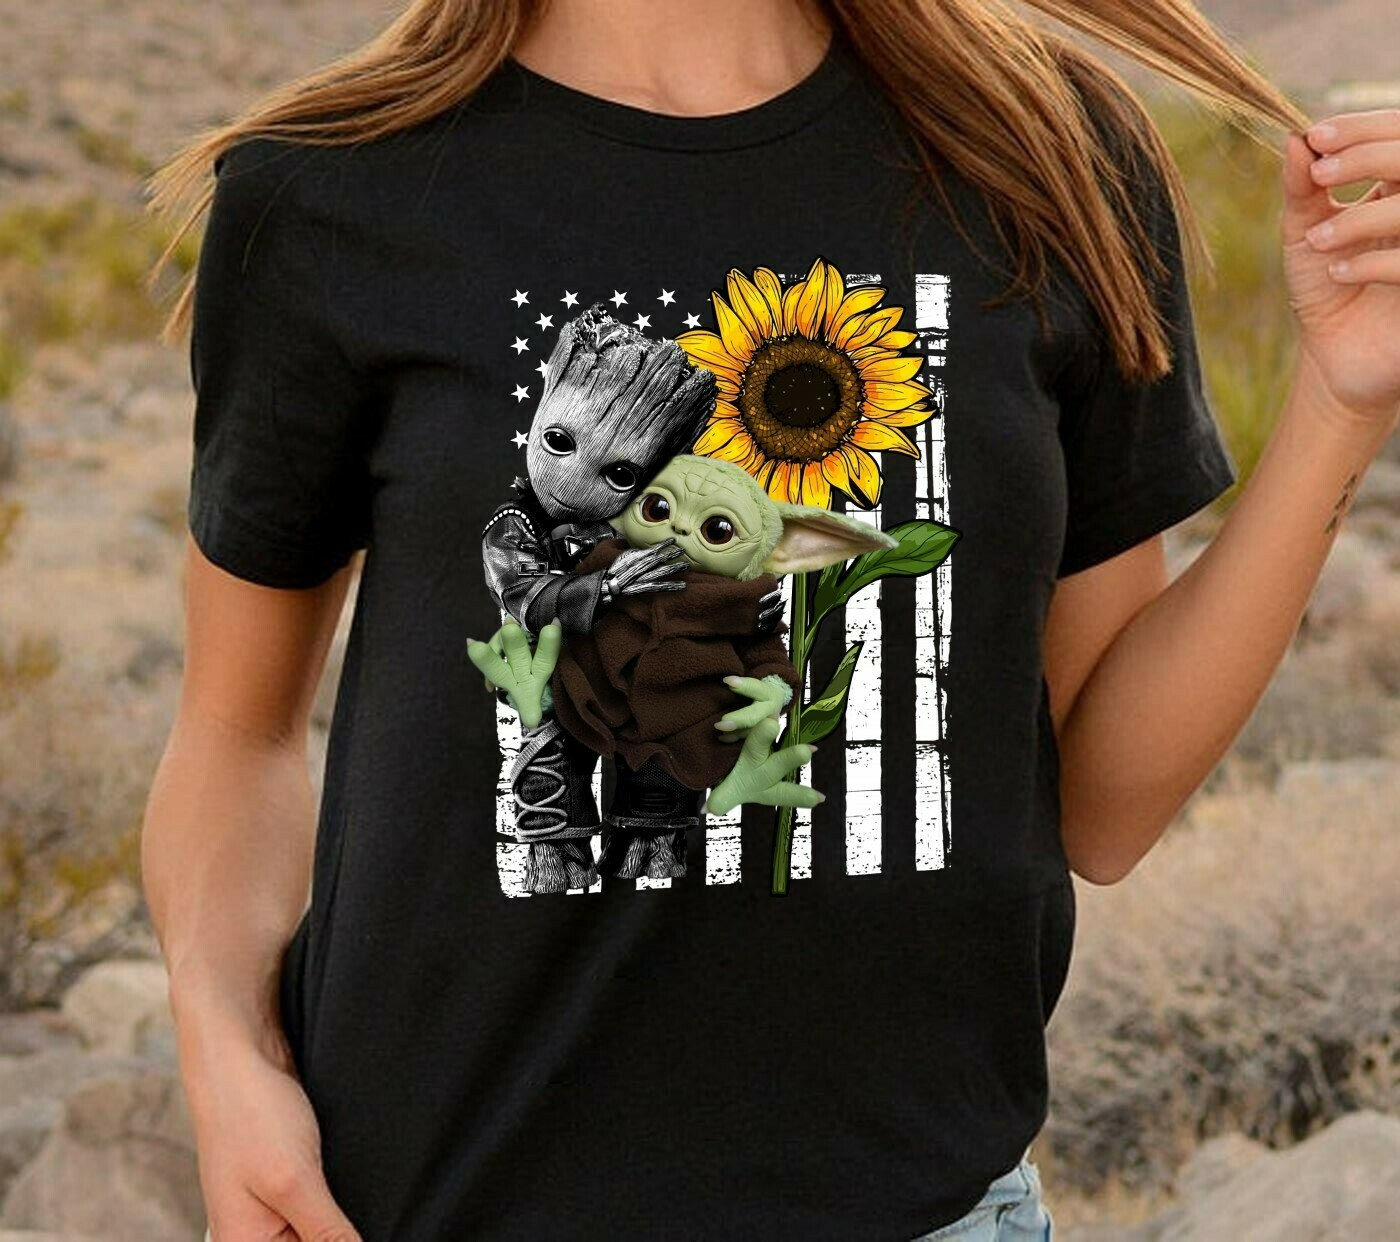 Groot hugging Baby Yoda Sunflower In A World shirt,Funny Star Wars The Mandalorian The Child First Memories T-Shirt Long Sleeve Sweatshirt Hoodie Jolly Family Gifts